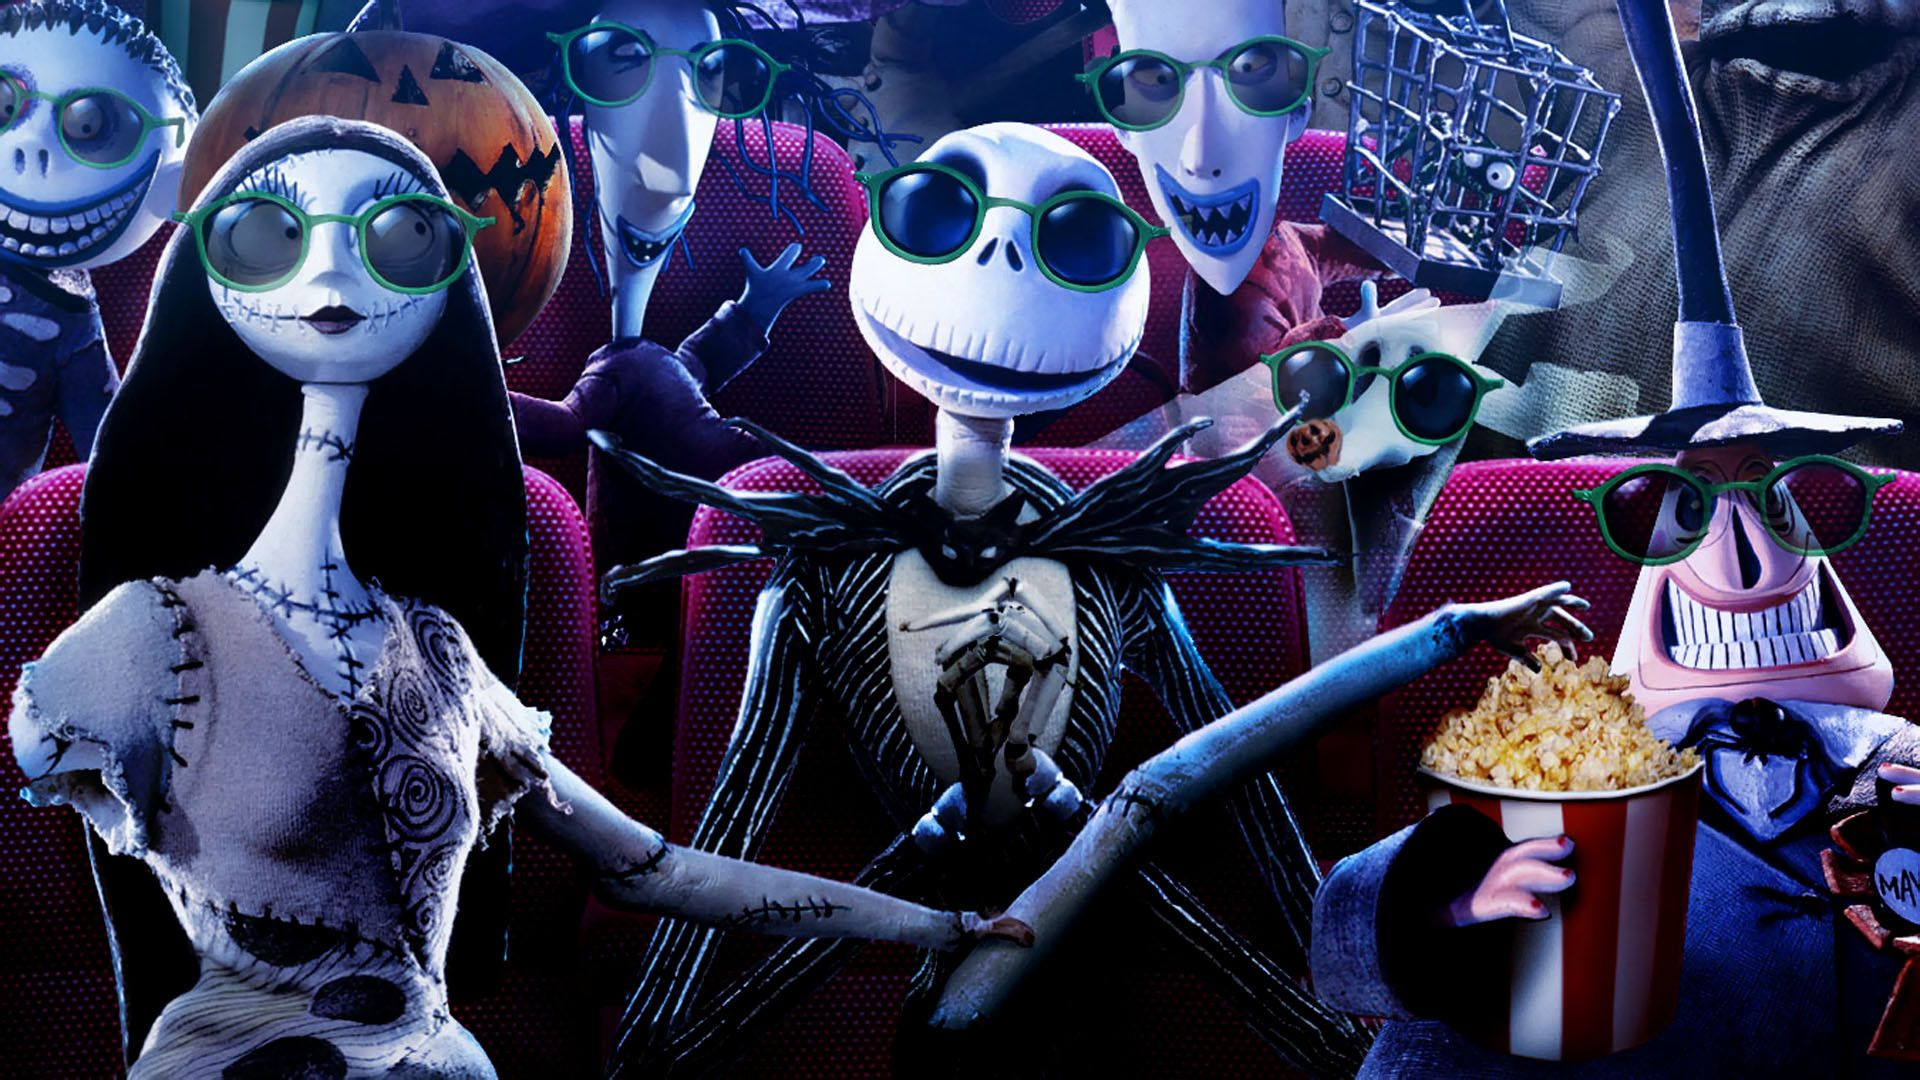 download Jack Skellington And Sally Wallpaper Hd Images 1920x1080